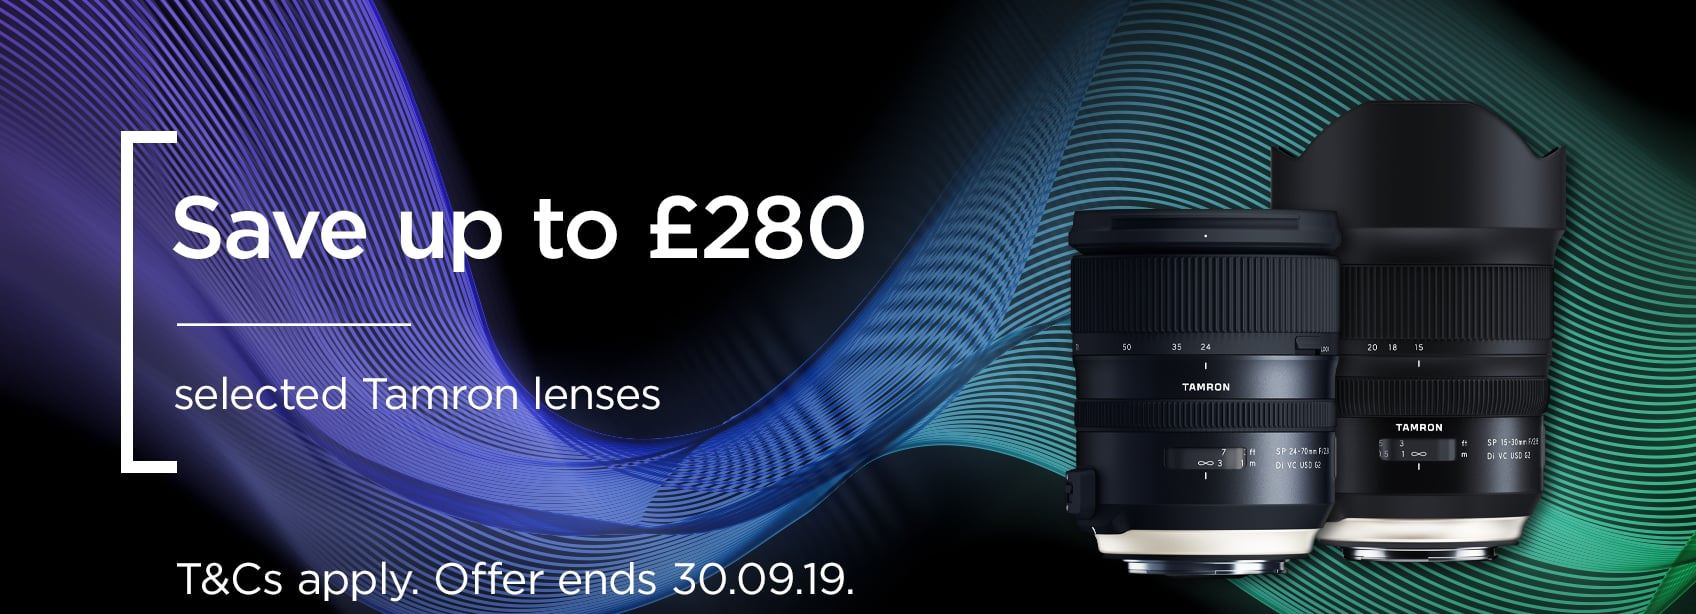 Tamron selected lenses - Save up to £280